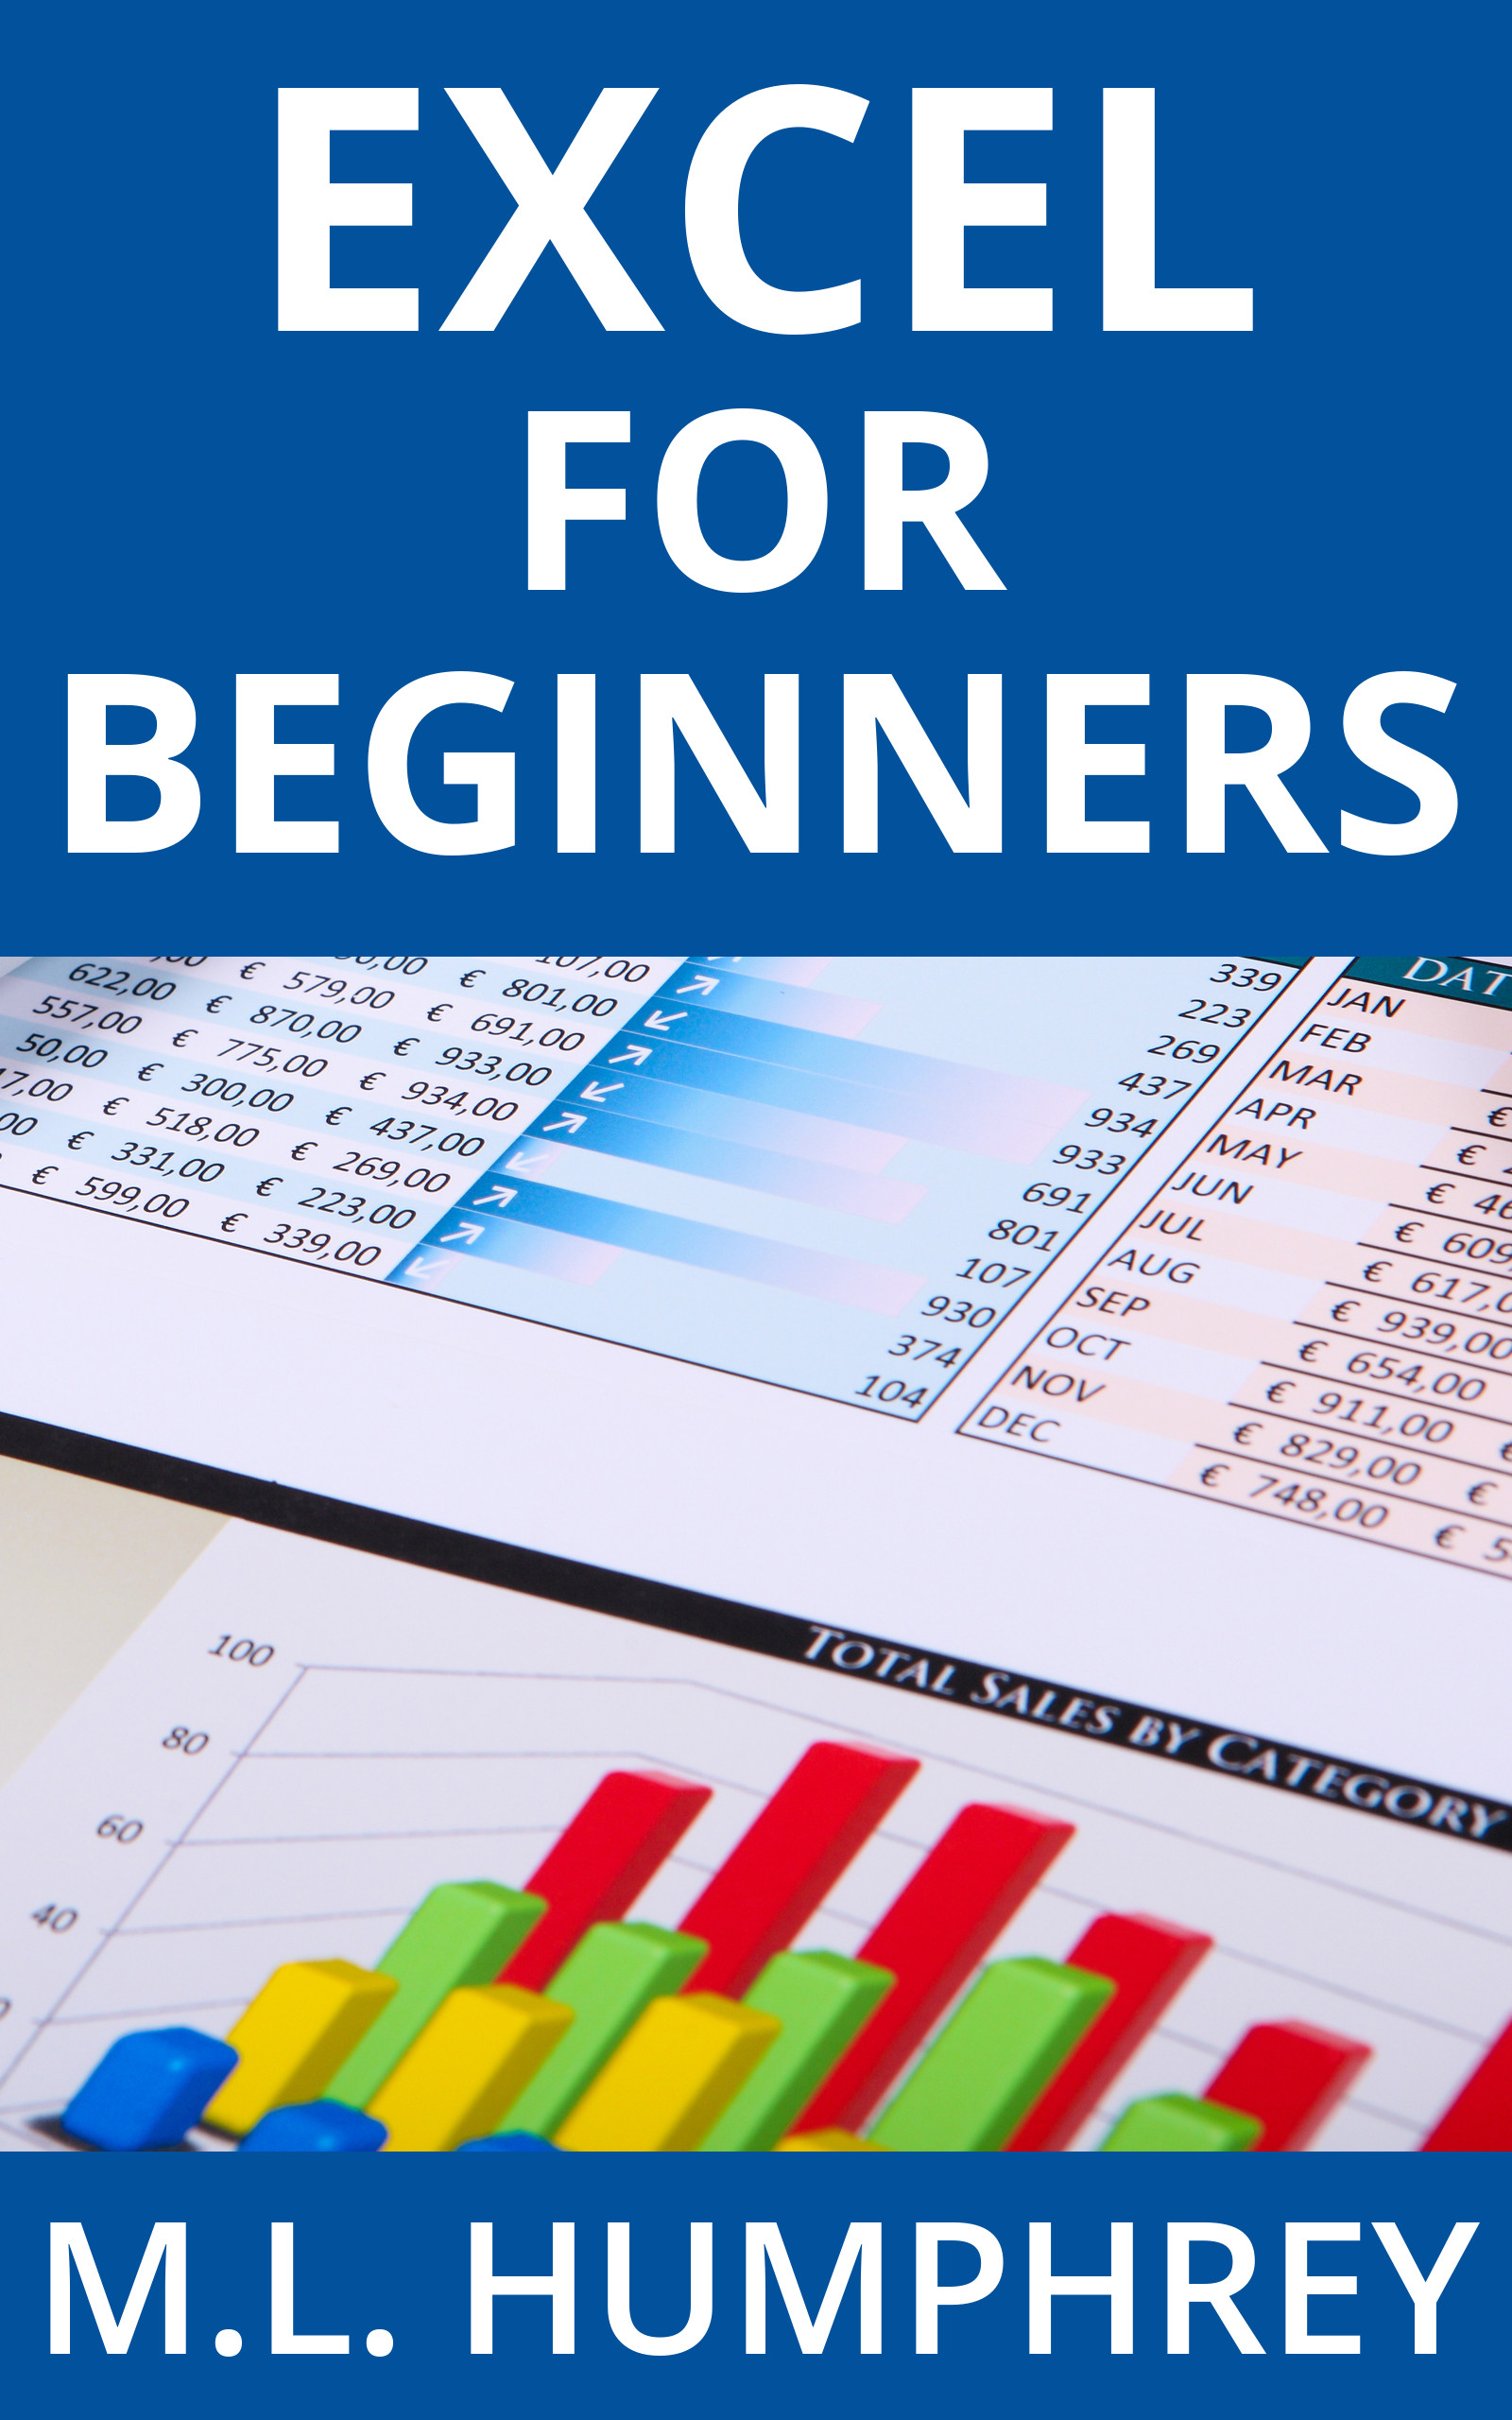 Excel For Beginners Open Sans Boldv2 M L Humphrey